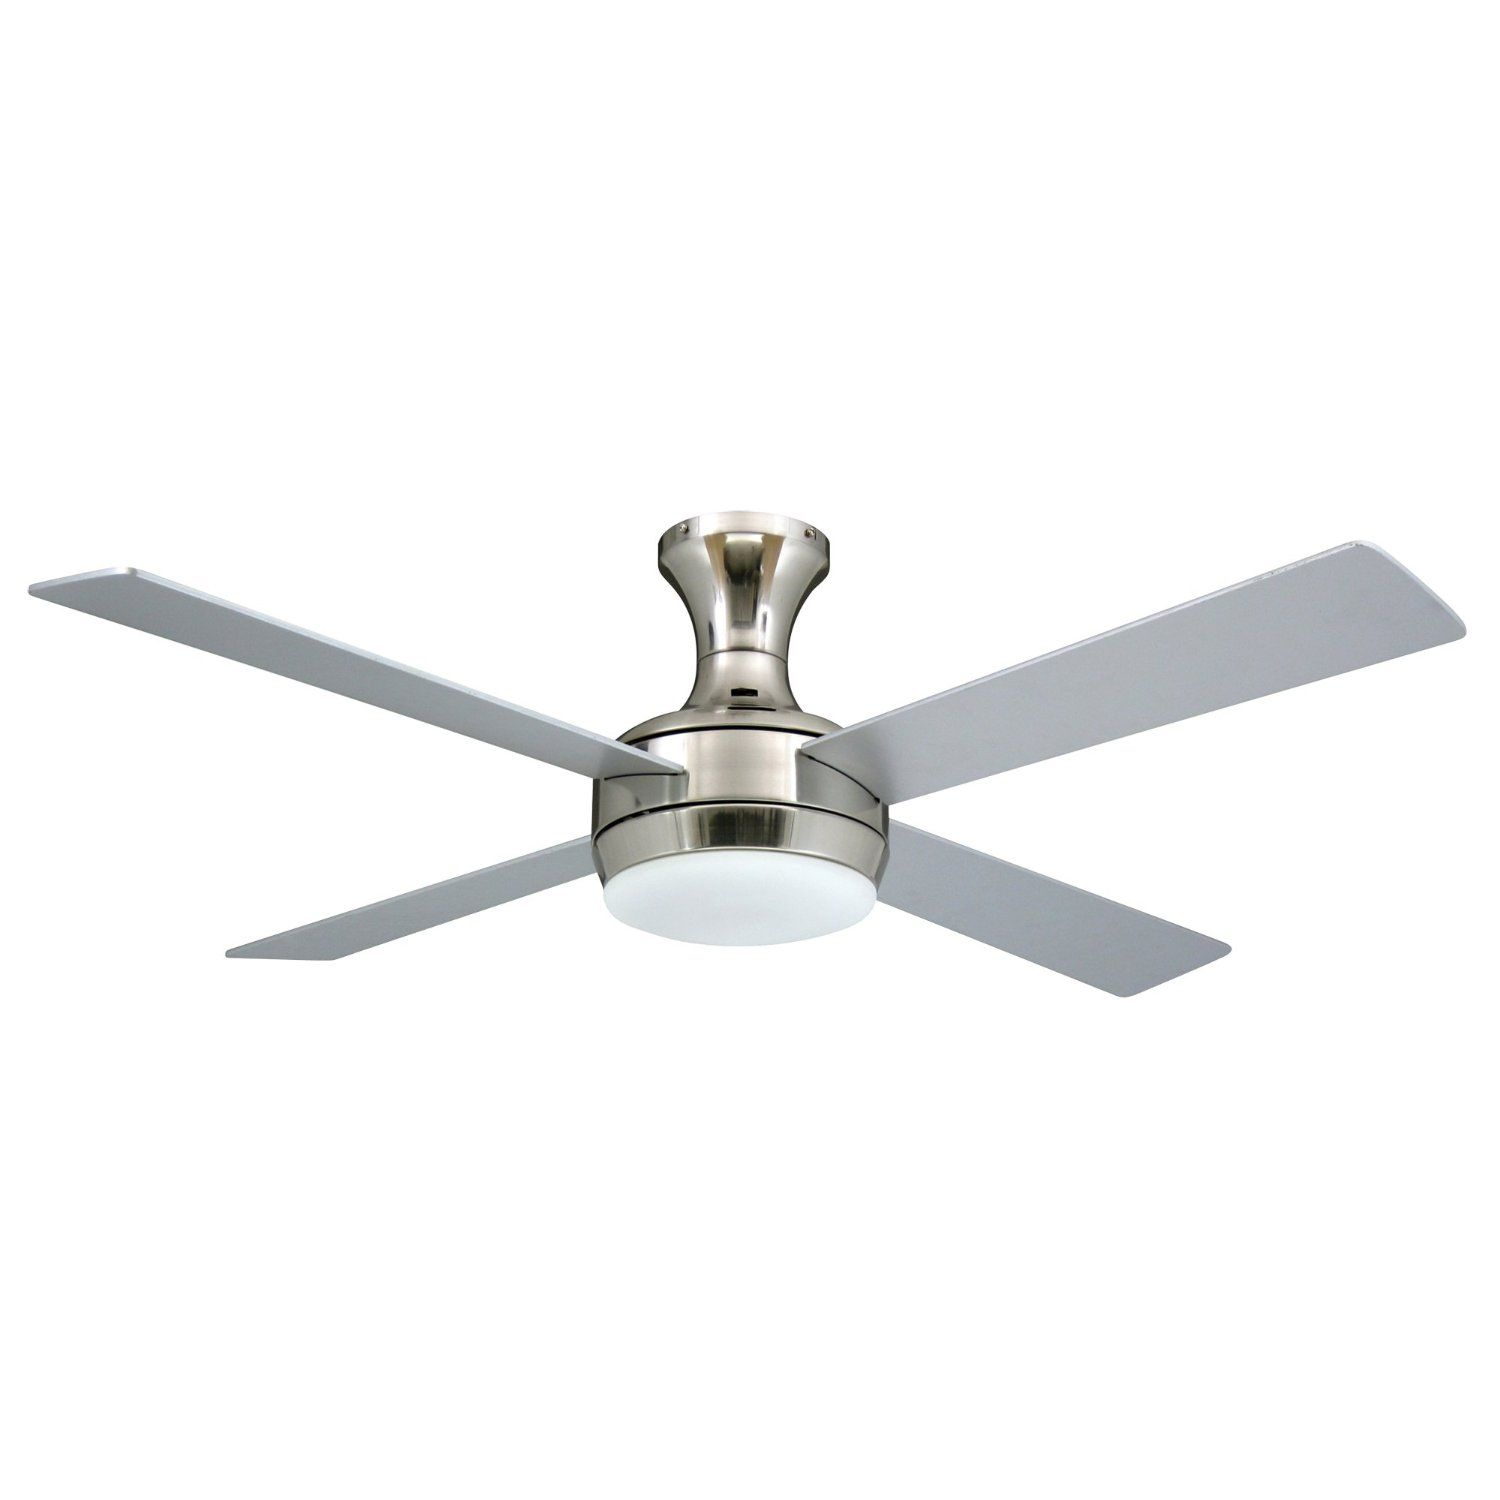 Yosemite home decor anselbn 52inch ceiling fan with